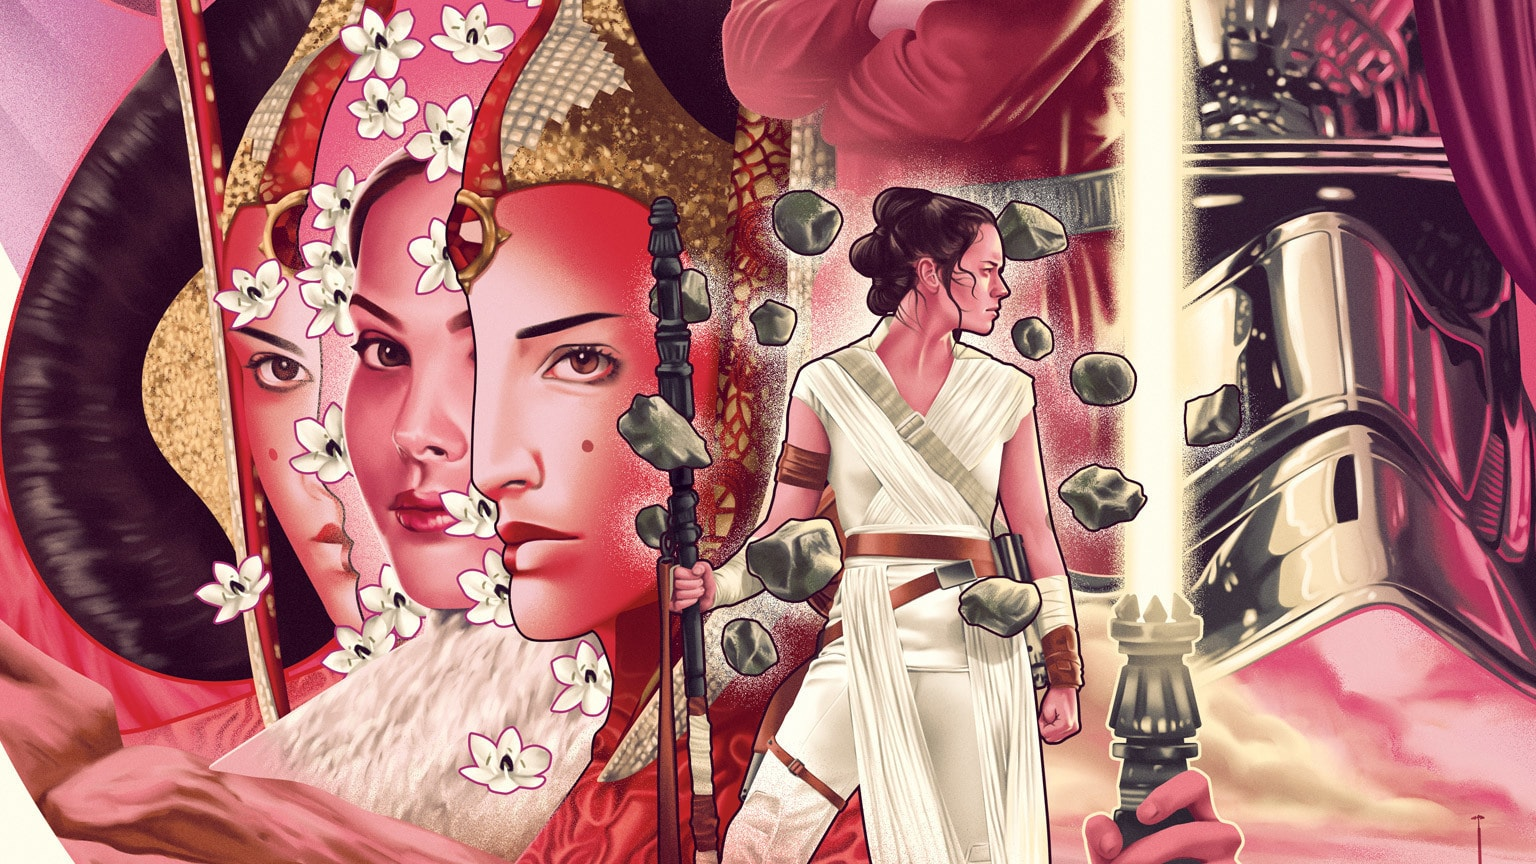 Artist Jack Hughes Celebrates LGBTQ+ History Month with the Women of the Star Wars Galaxy